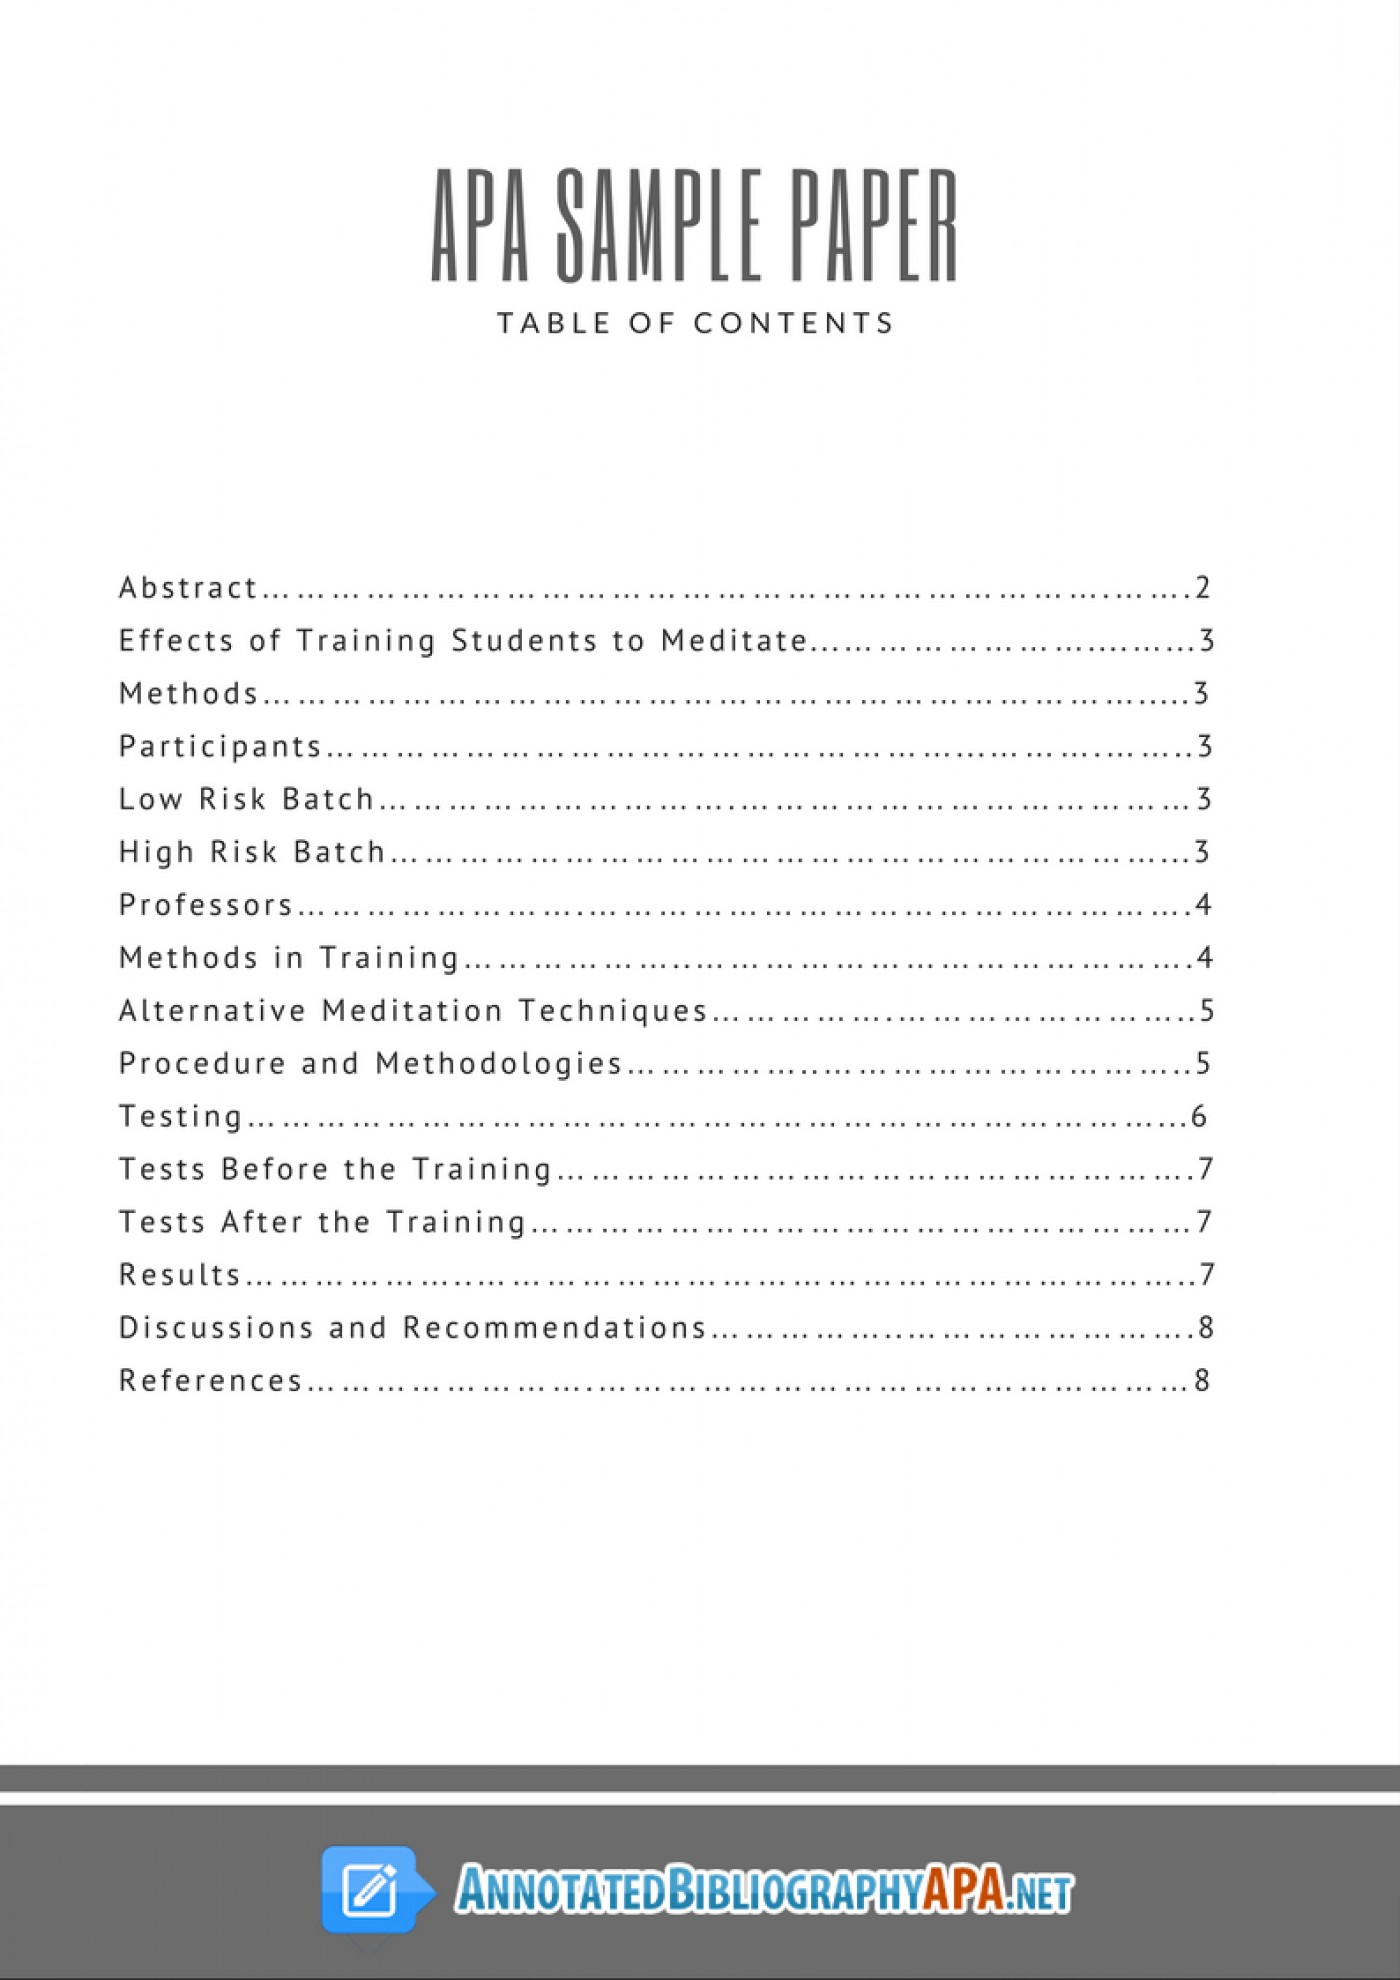 002 Apa Style Research Paper Example With Table Of Contents Stunning 1400